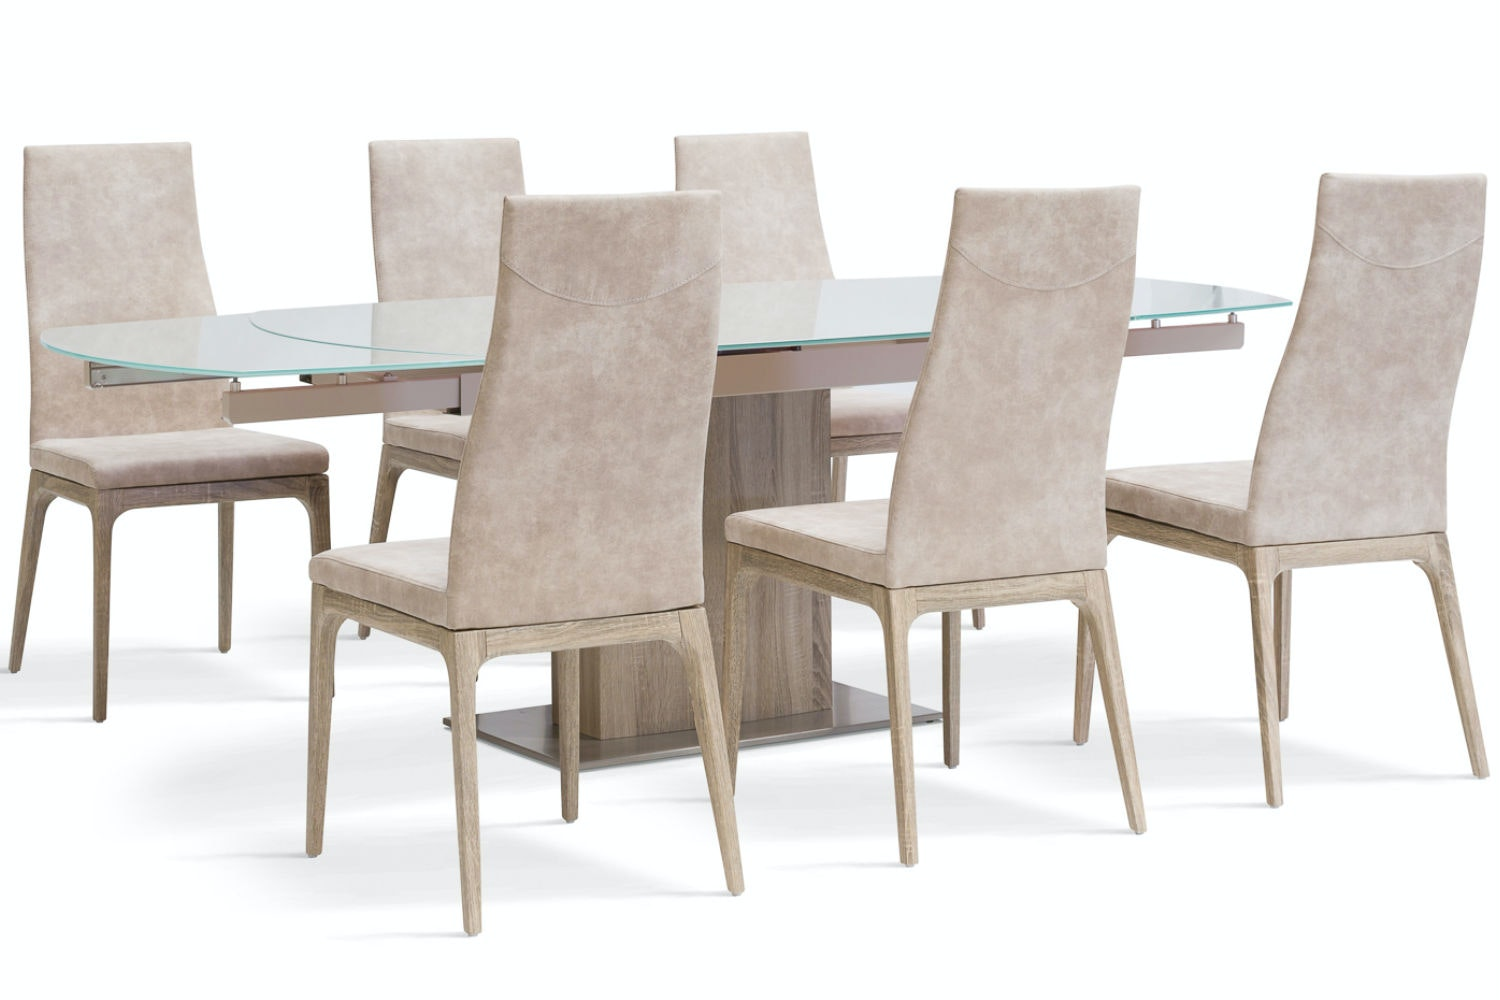 Lucci 7 Piece Dining Set | High Calvino Chairs | Light